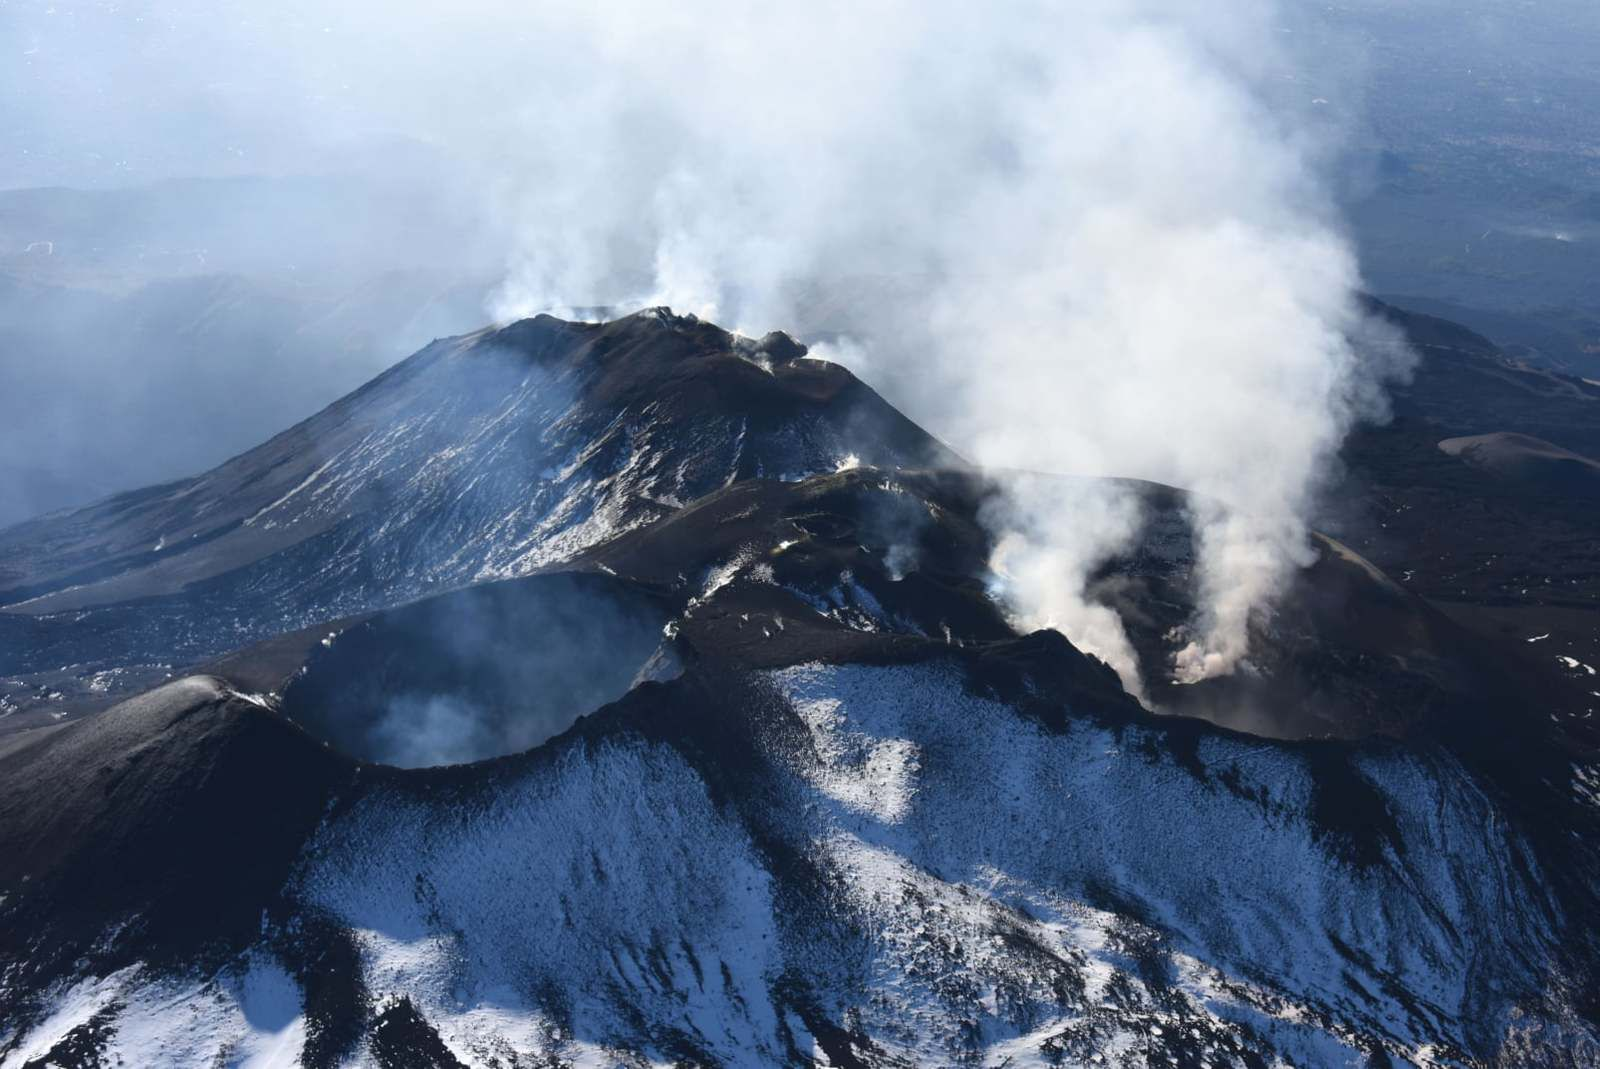 Etna - summit craters - photo by Stefano Branca 23.10.2020 / INGV